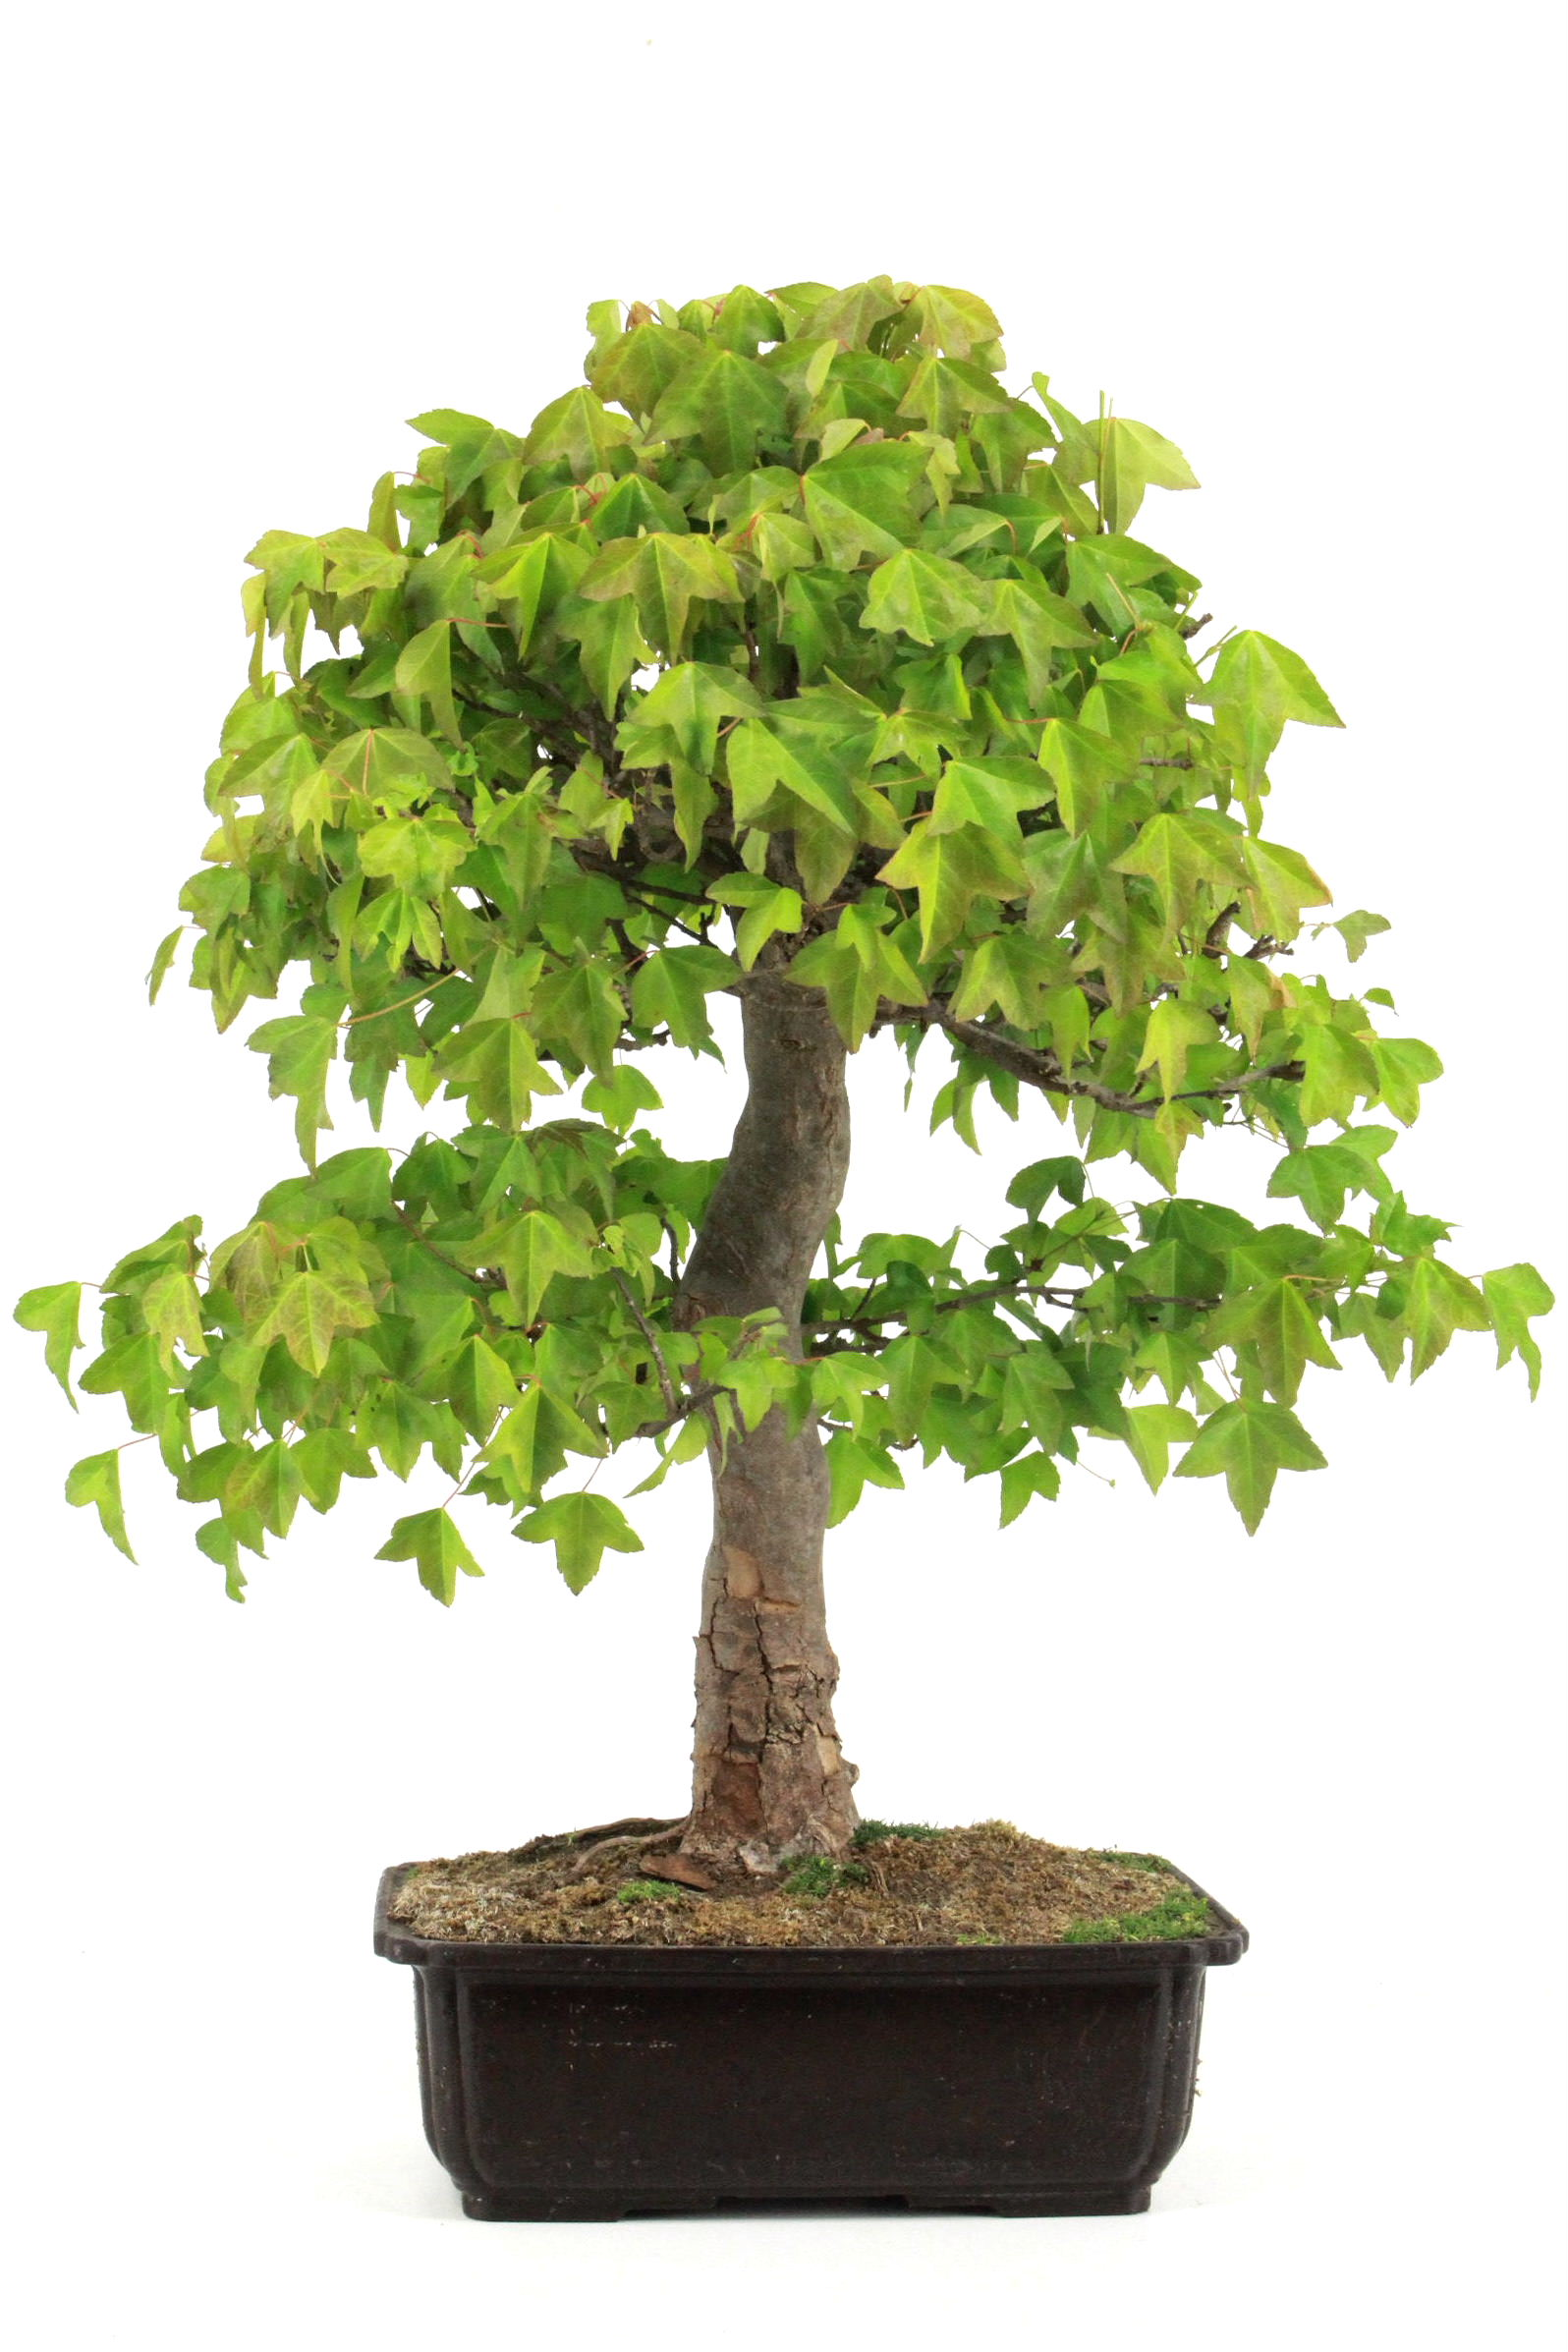 Bonsai dreispitz ahorn 57 cm 265 bei oyaki bonsai kaufen for Bonsai onlineshop